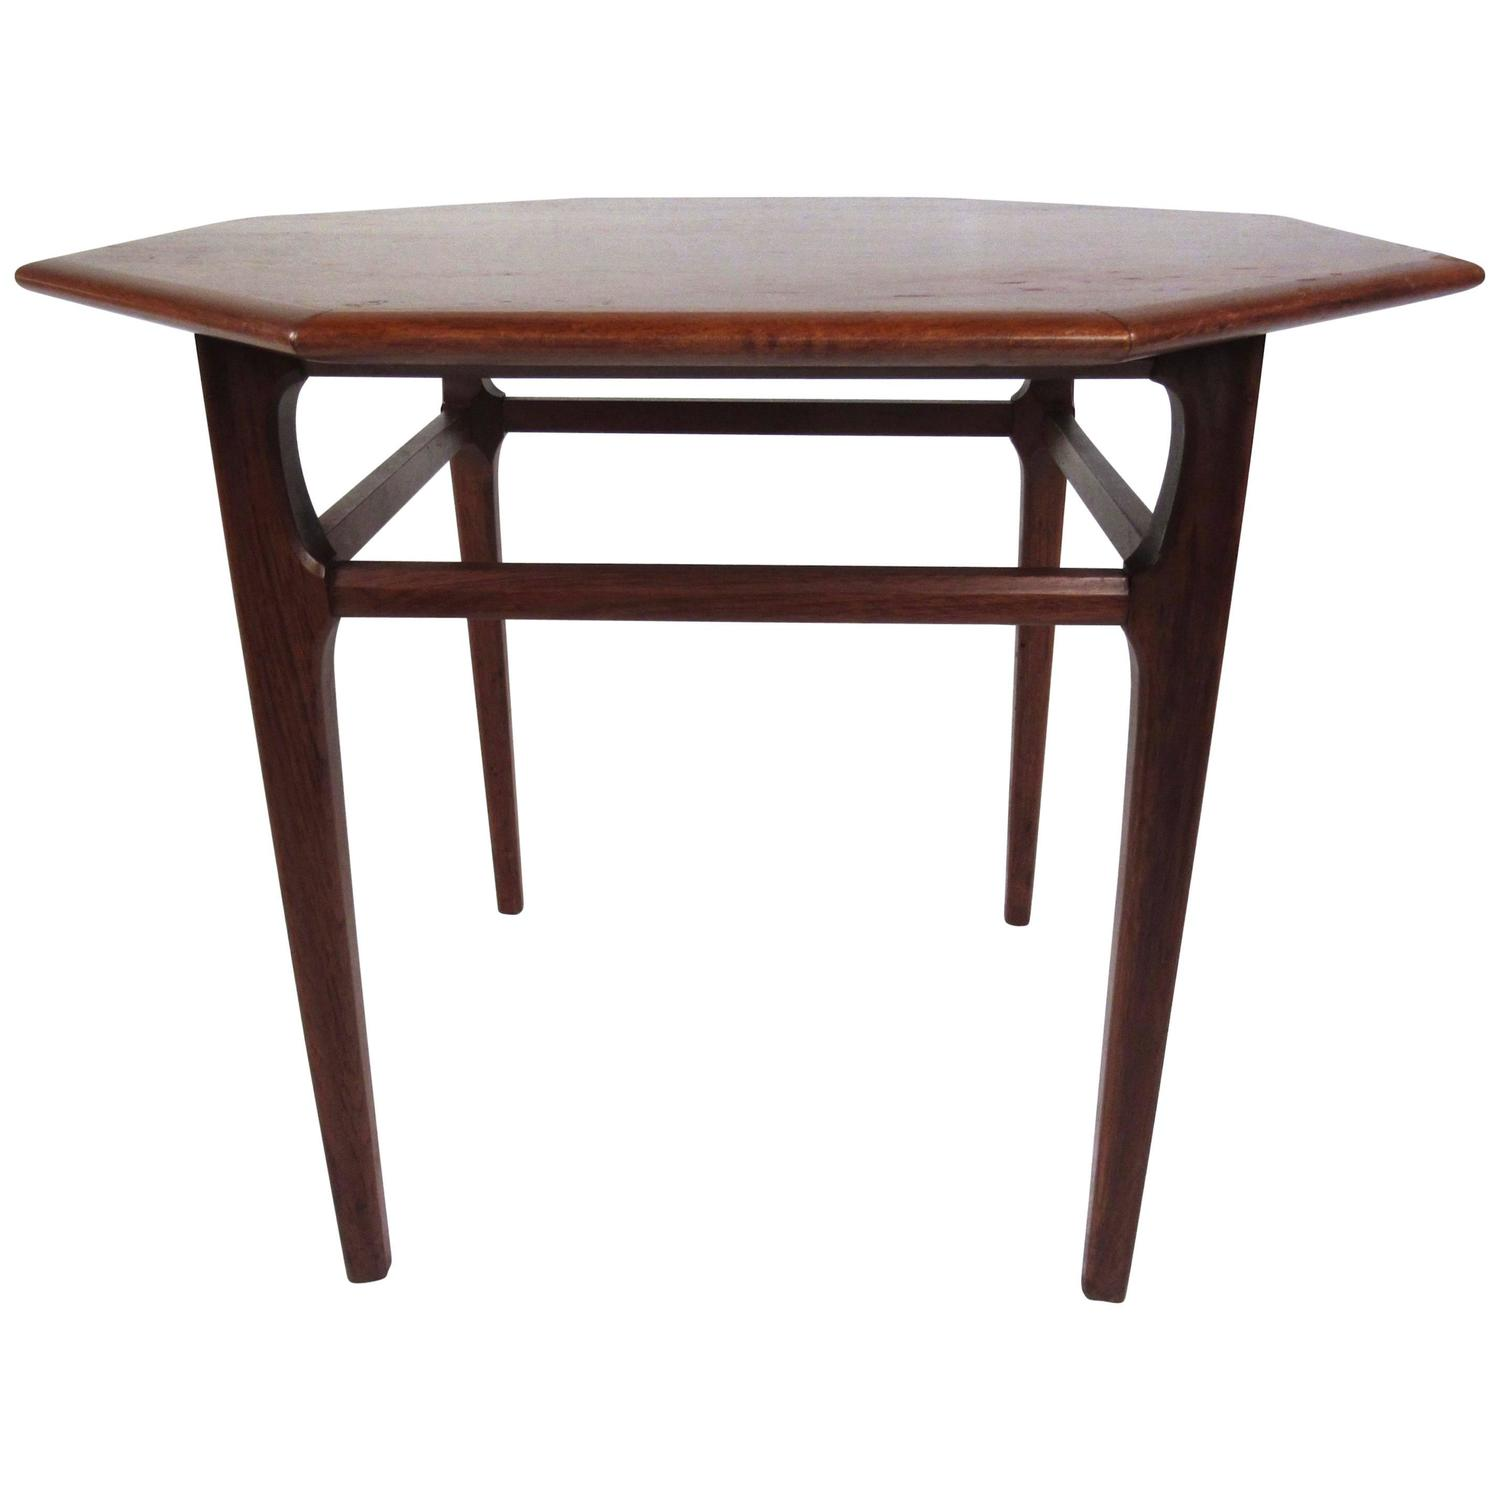 MidCentury Modern Octagonal Side Table by Mersman For Sale at 1stdibs